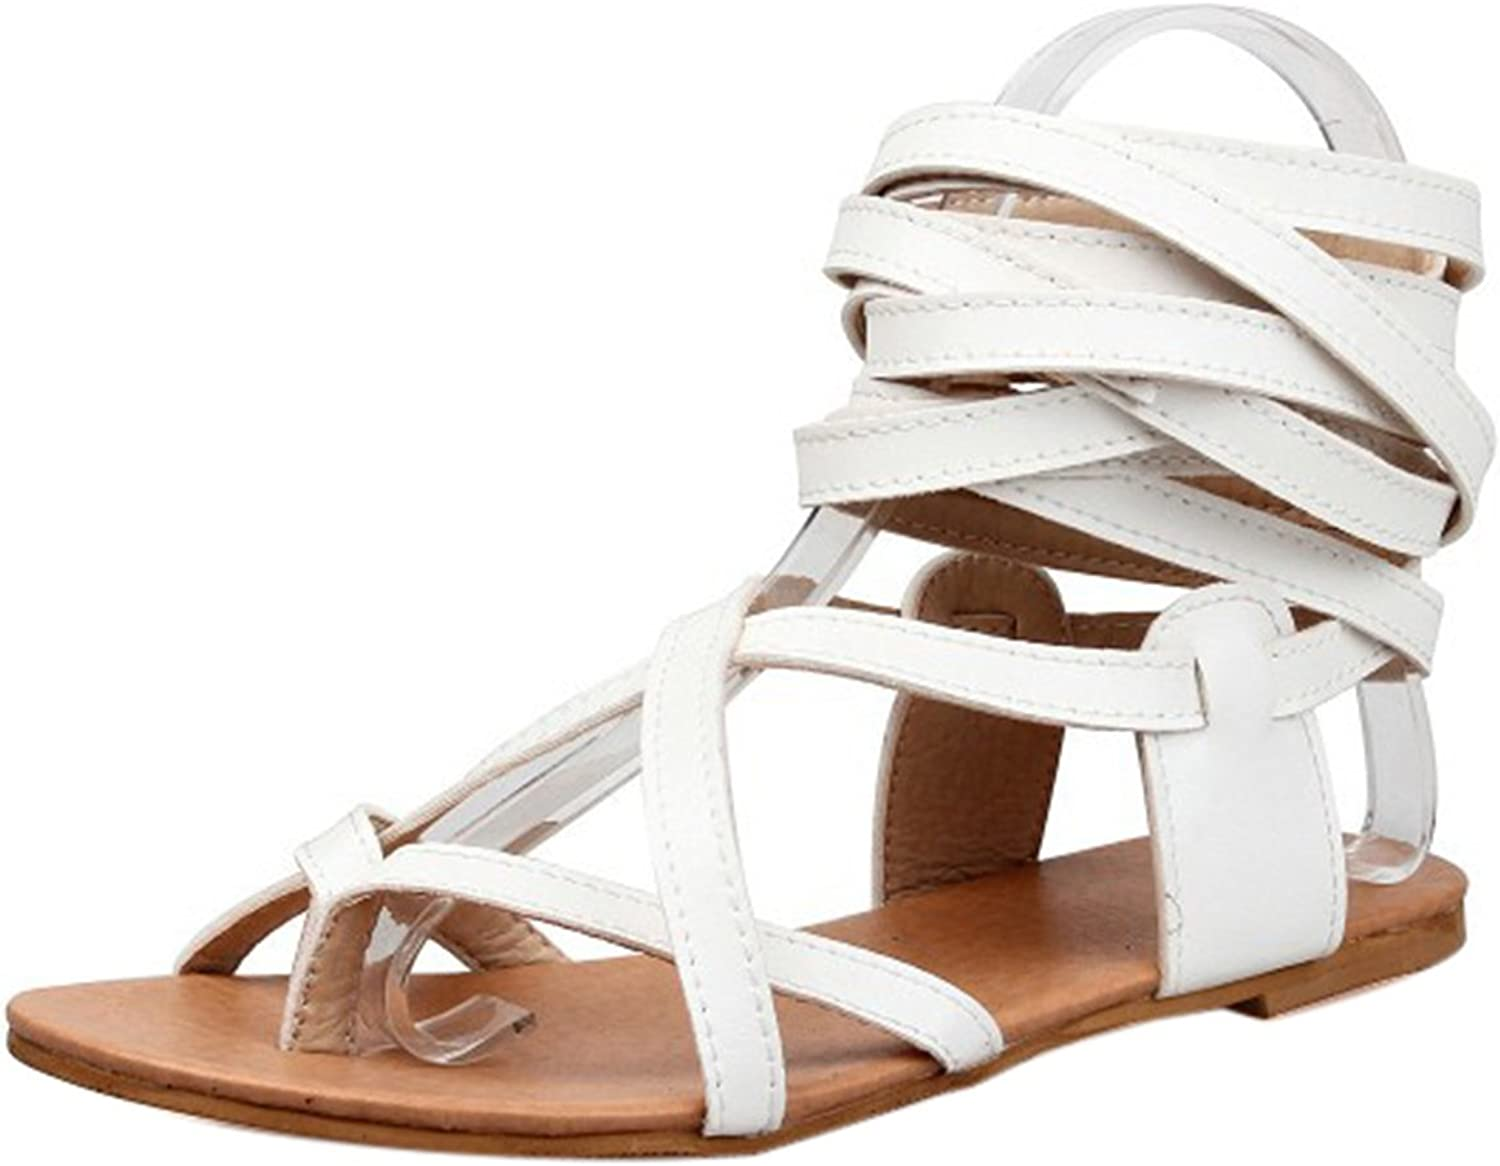 ONCEFIRST Women's Fashion Gladiator Flat Sandal